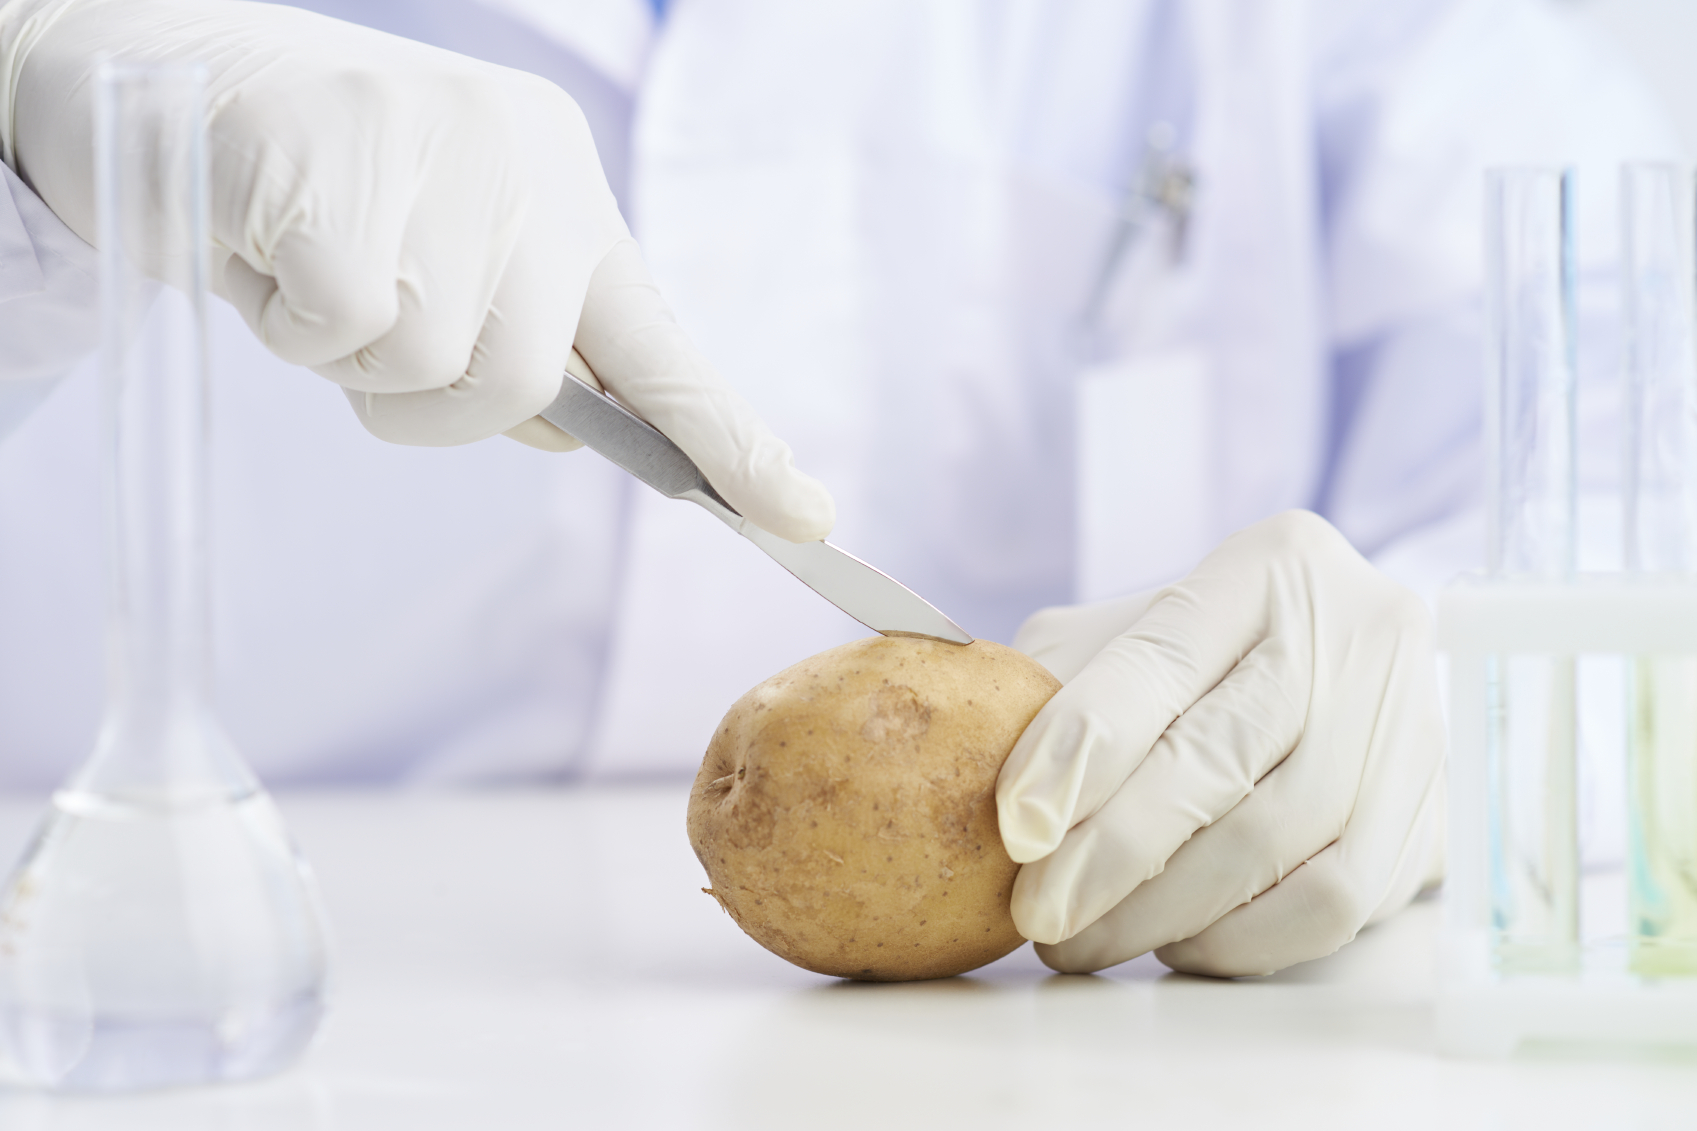 Potato iStock_000025270481Medium.jpg